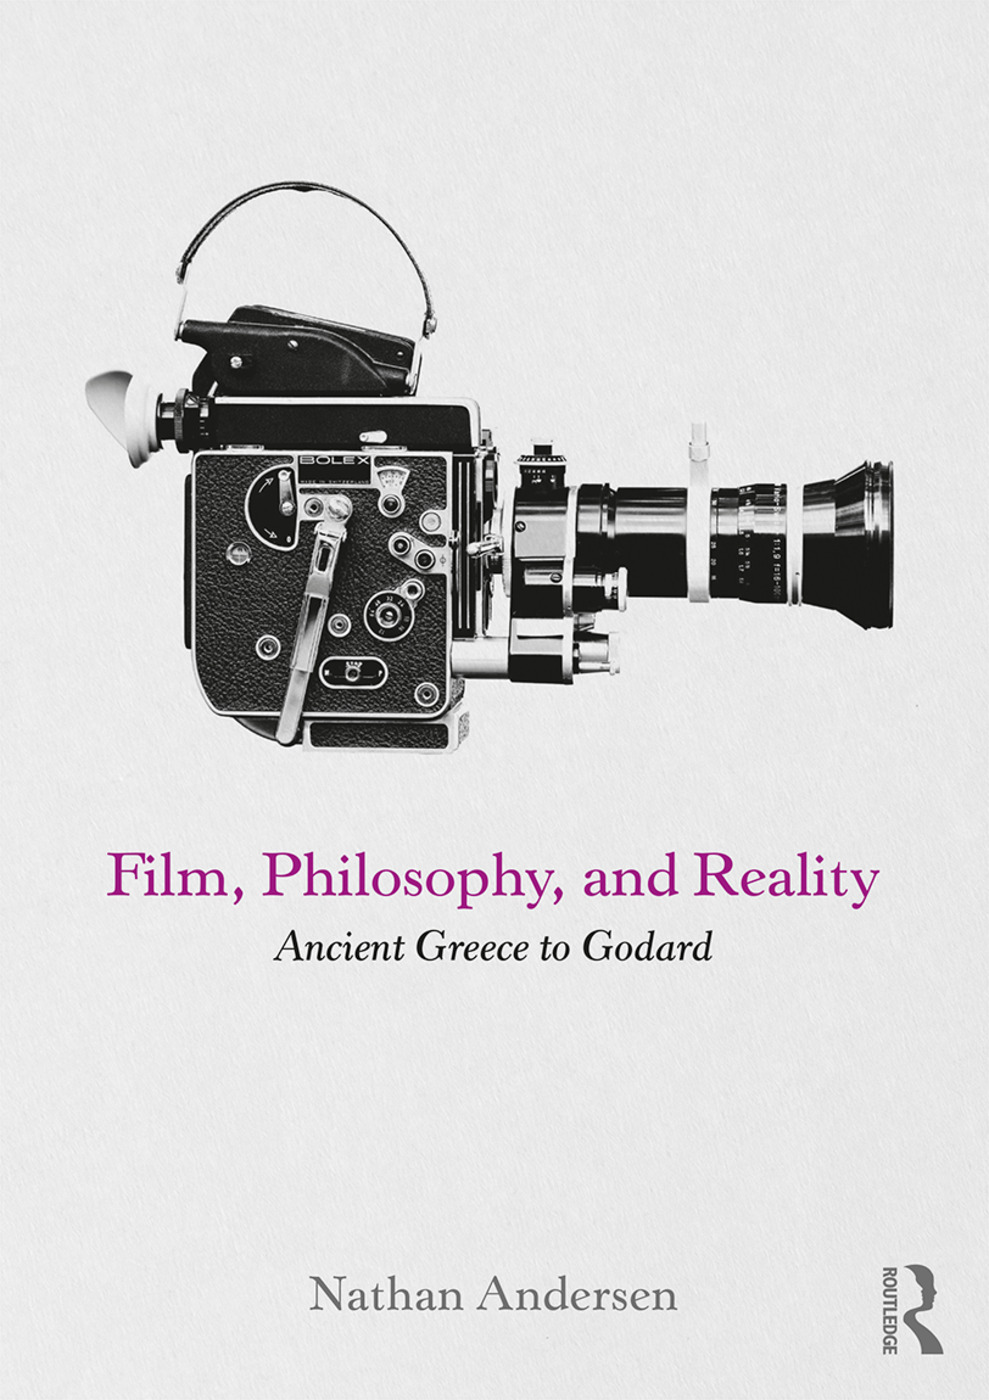 Film, Philosophy, and Reality: Ancient Greece to Godard book cover